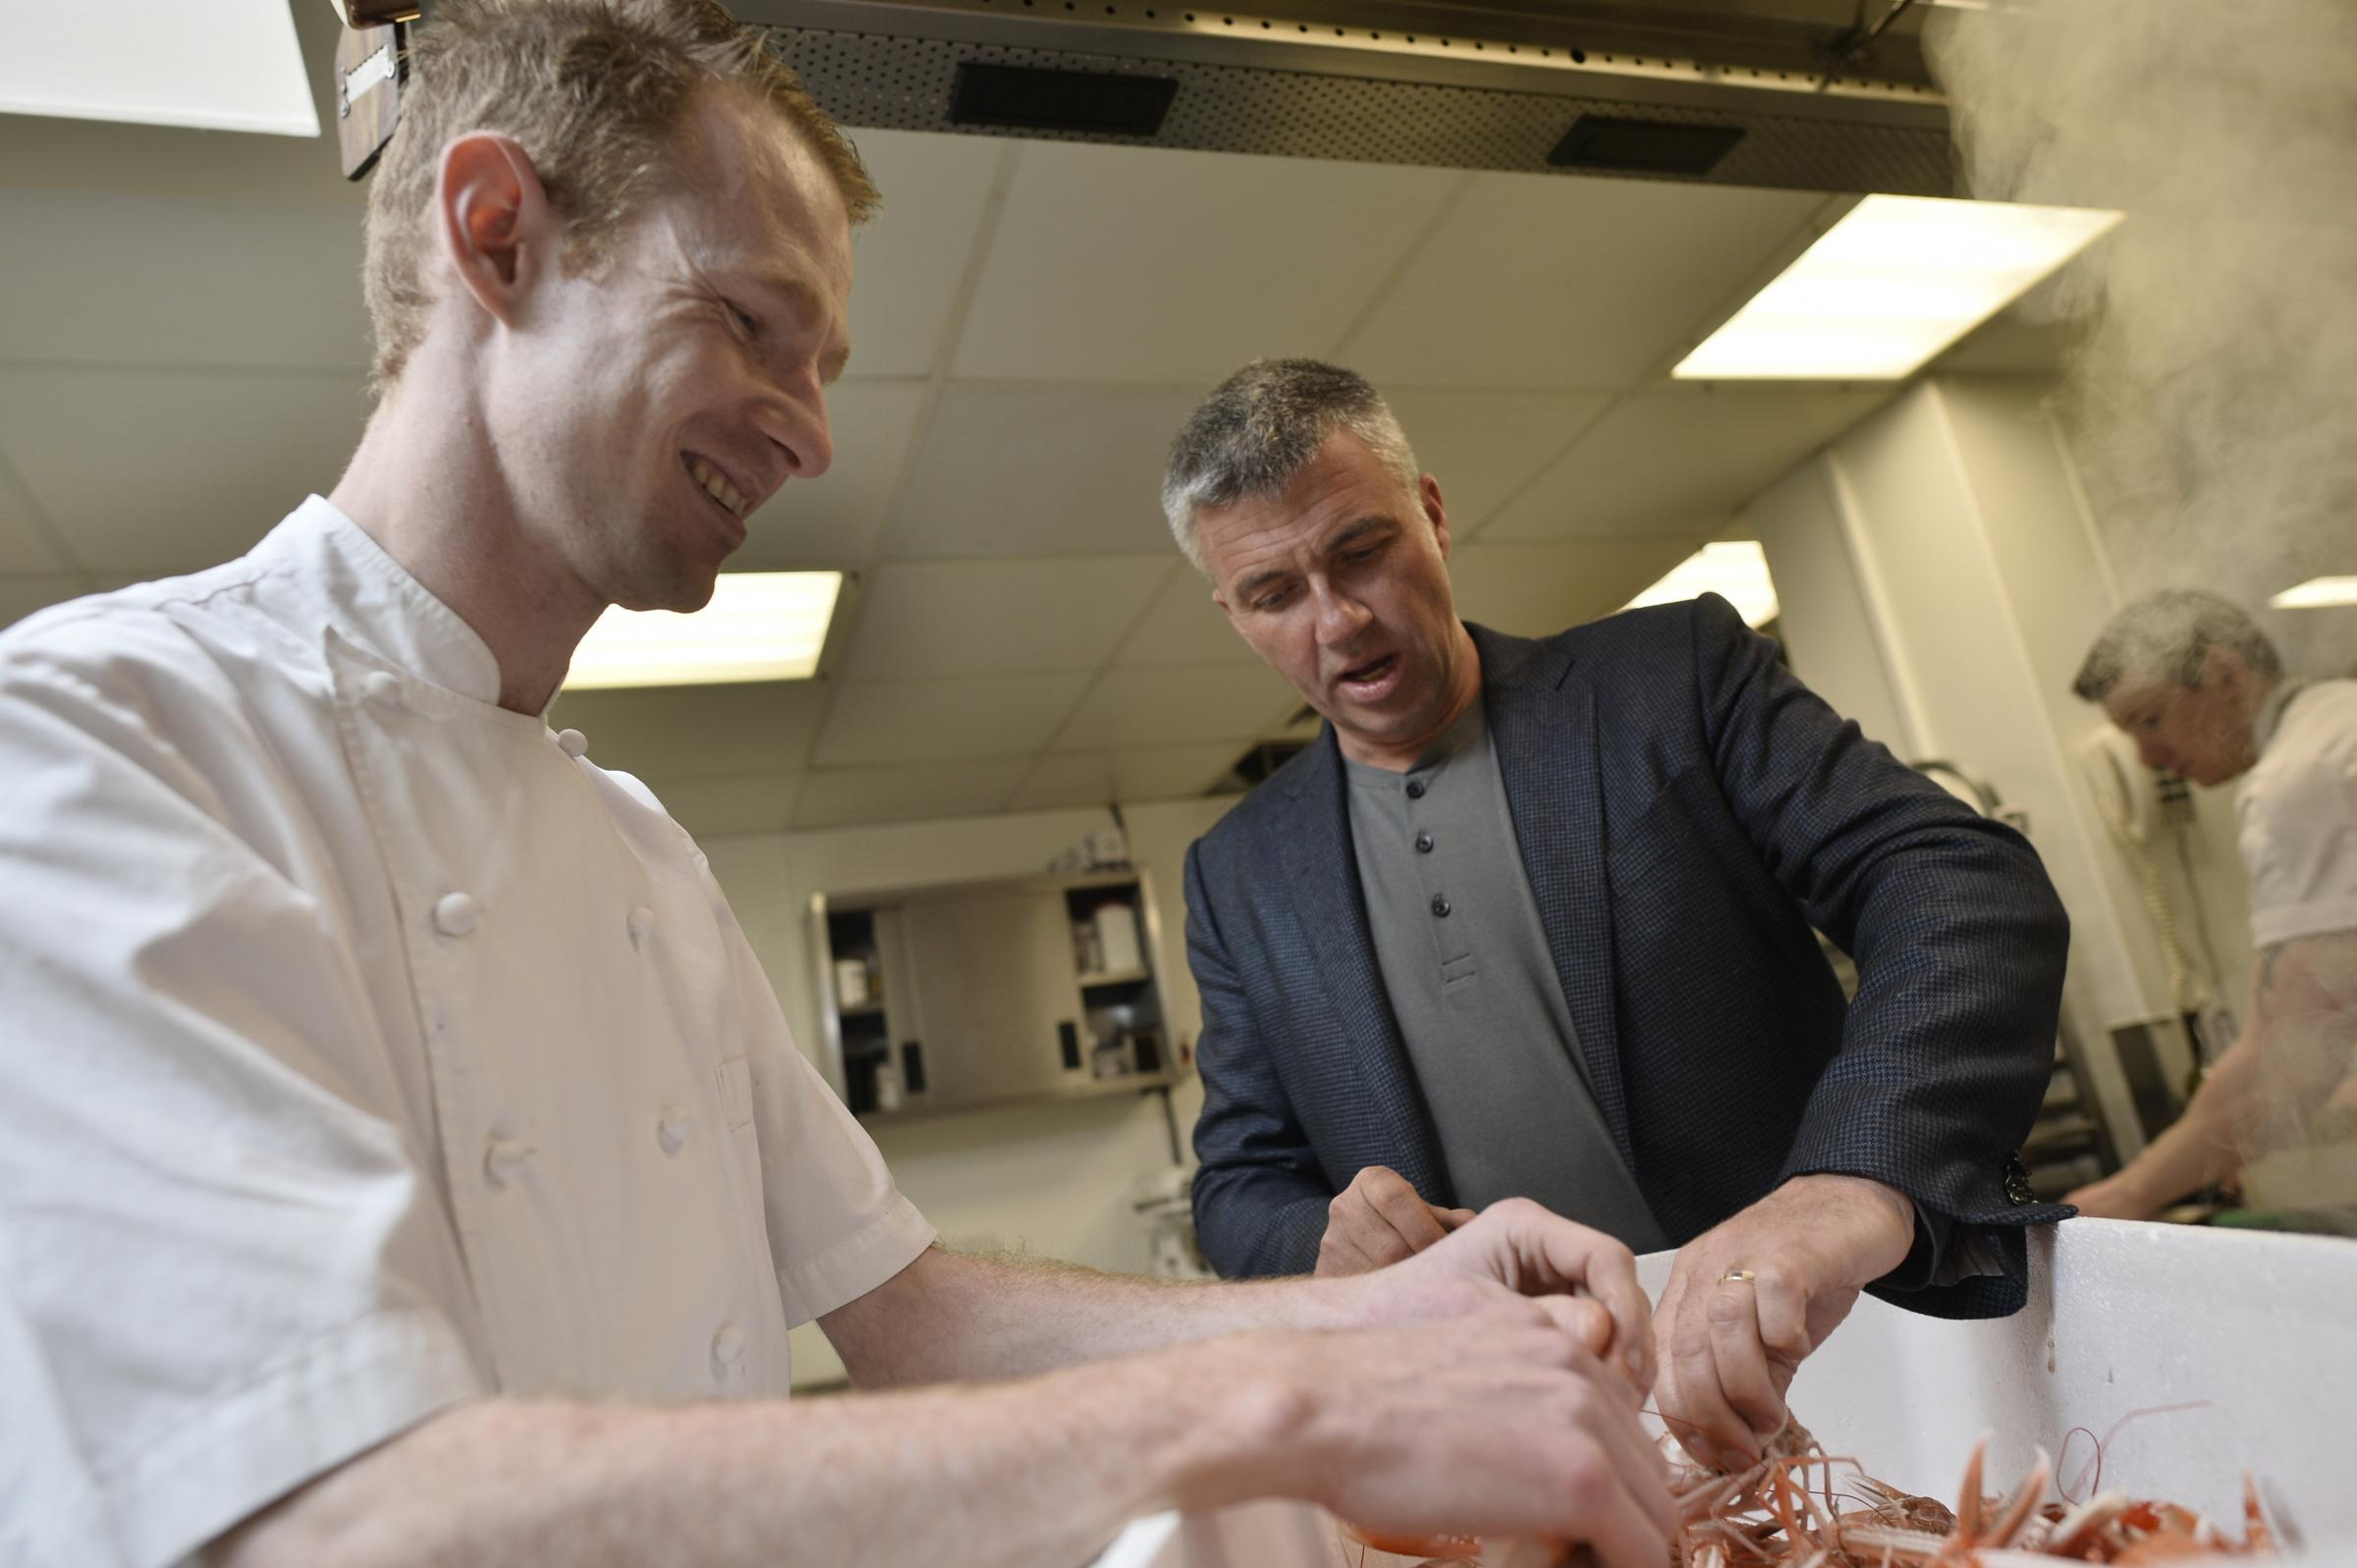 Graeme Cheevers and Martin Wishart in the Cameron House kitchen. Photo by Jamie Simpson/Herald & Times